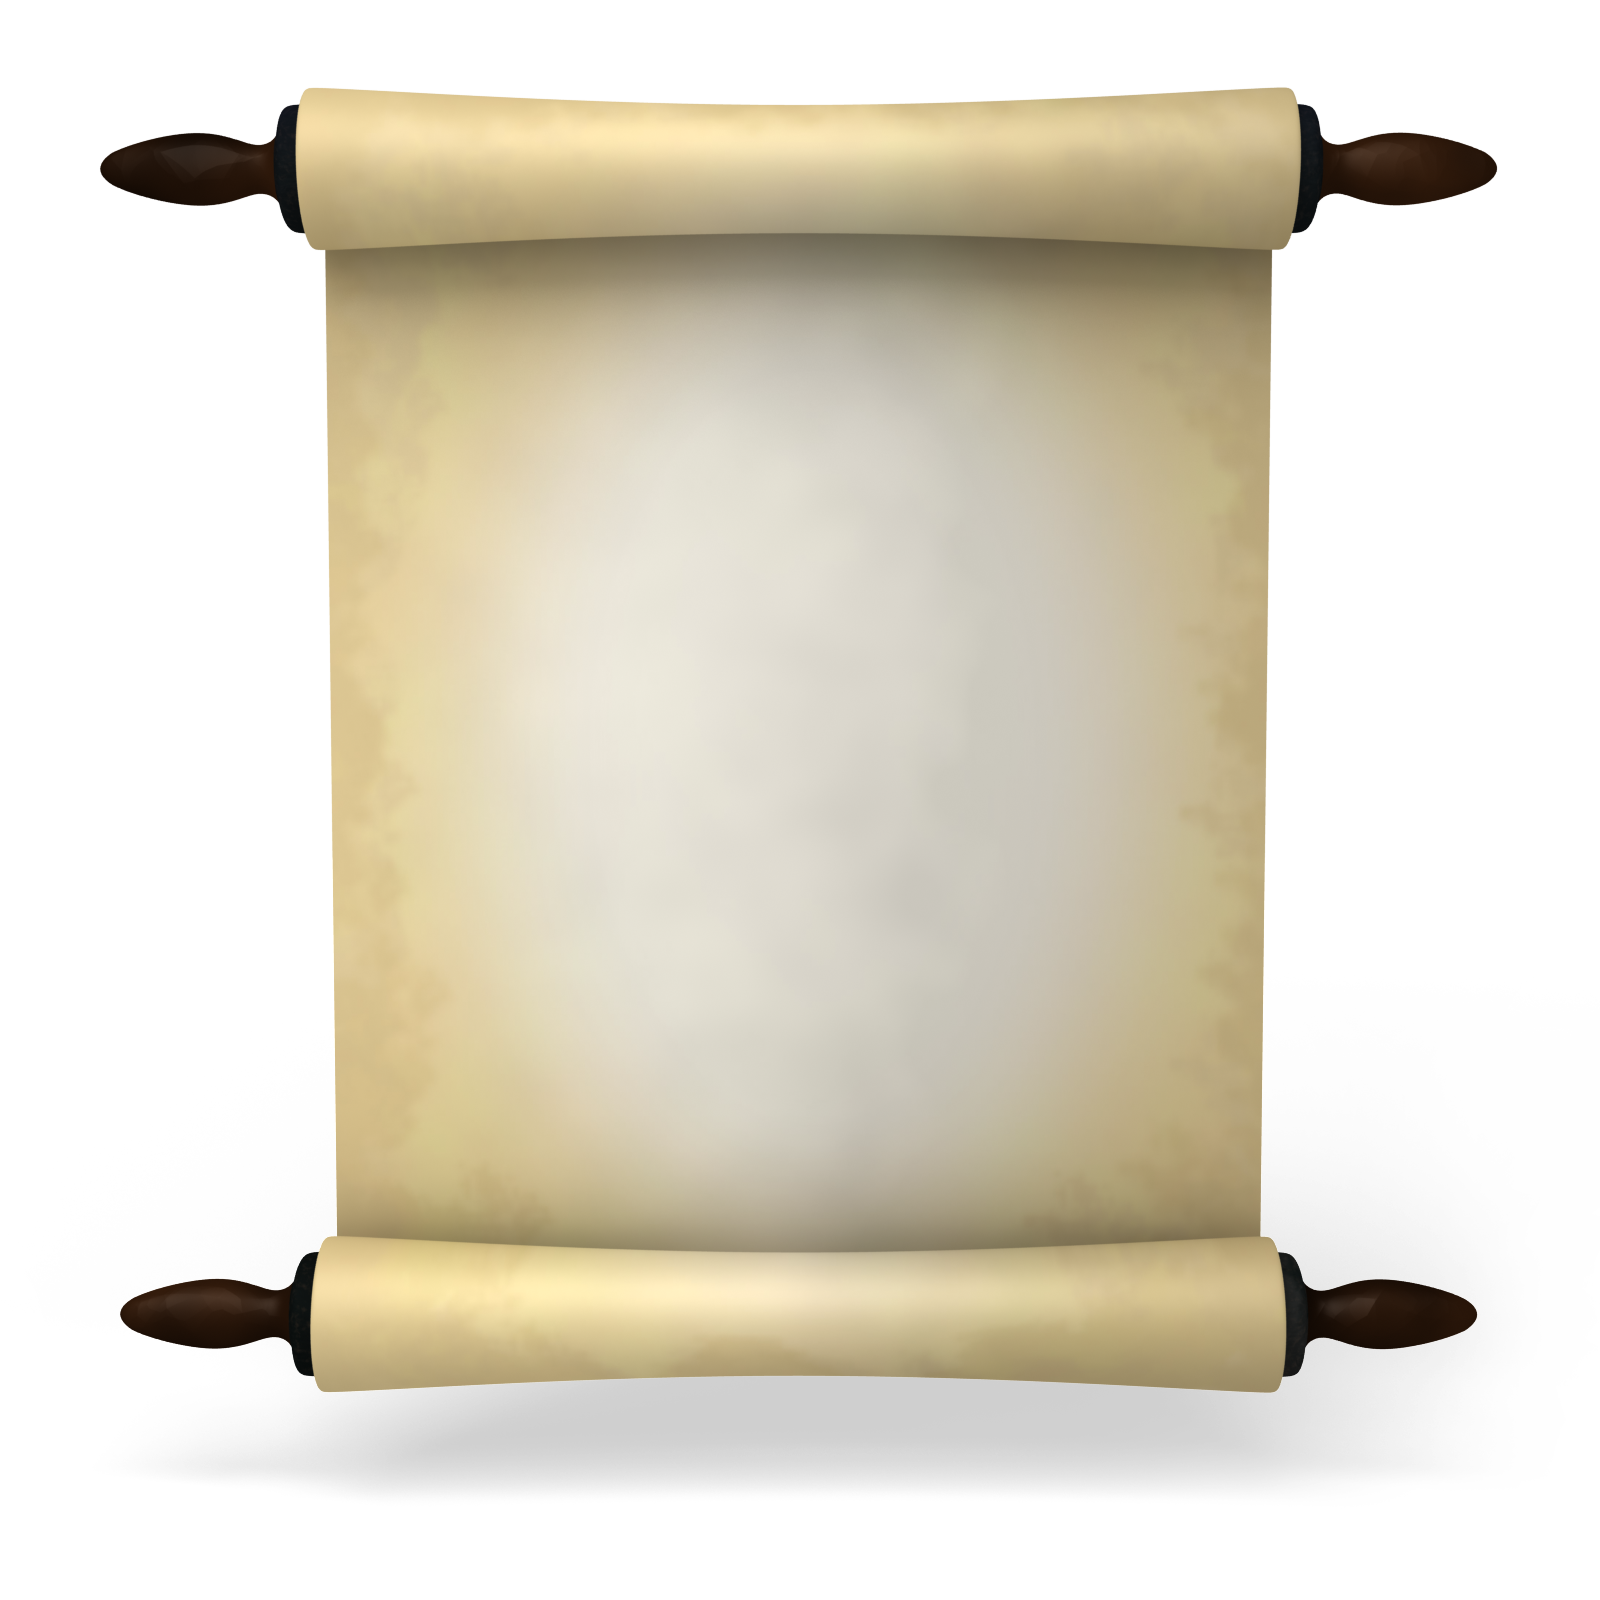 Scroll Free Download Png PNG Image - Scroll PNG